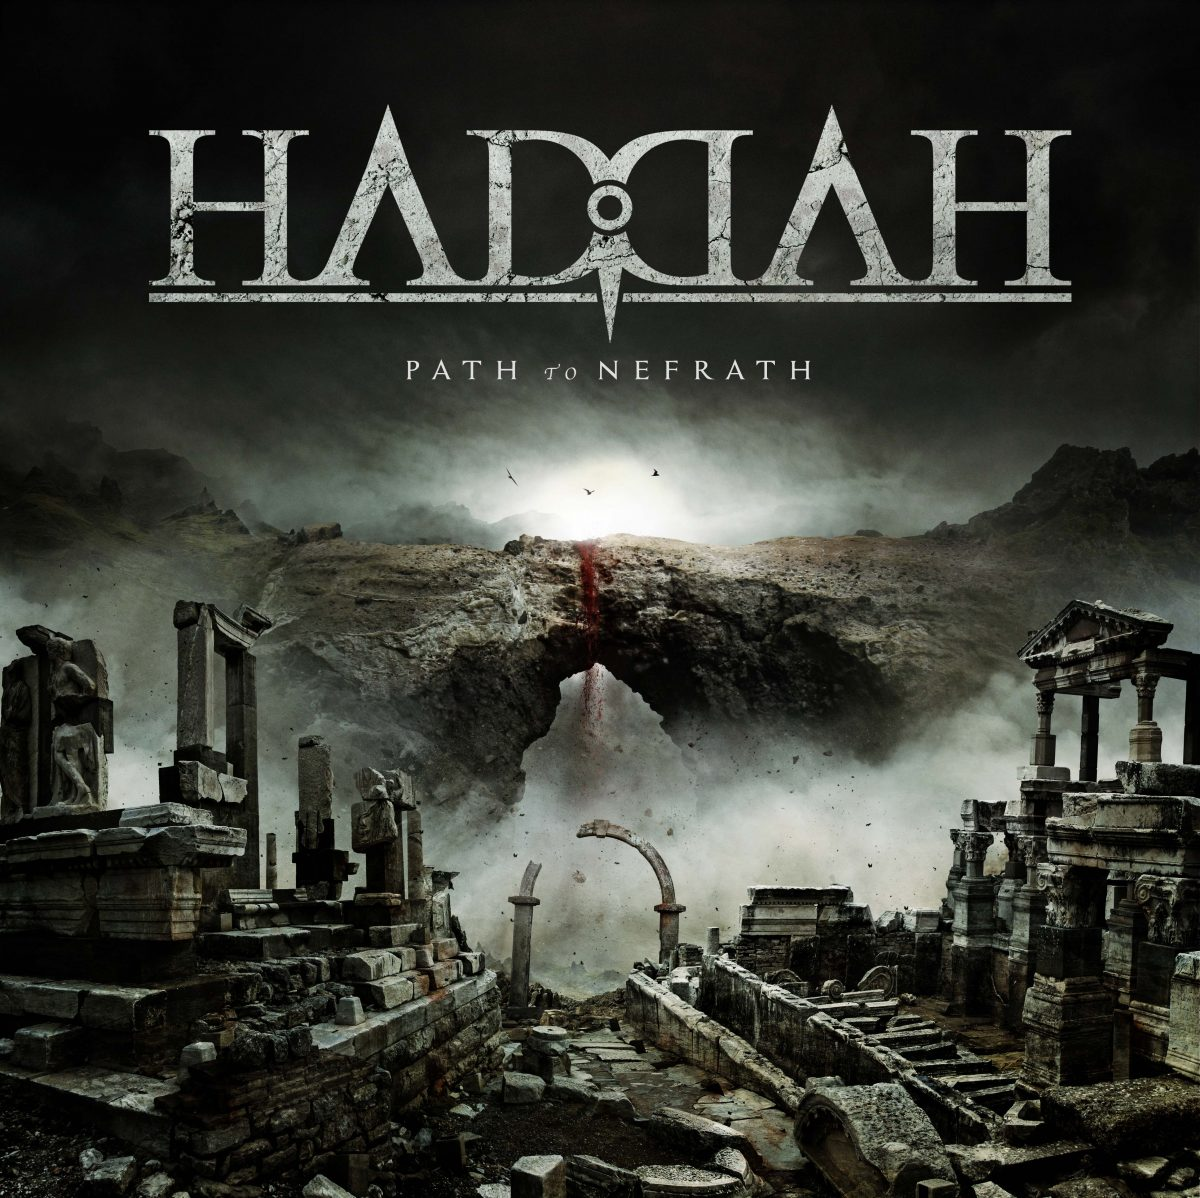 HaddaH – Path to Nefrath